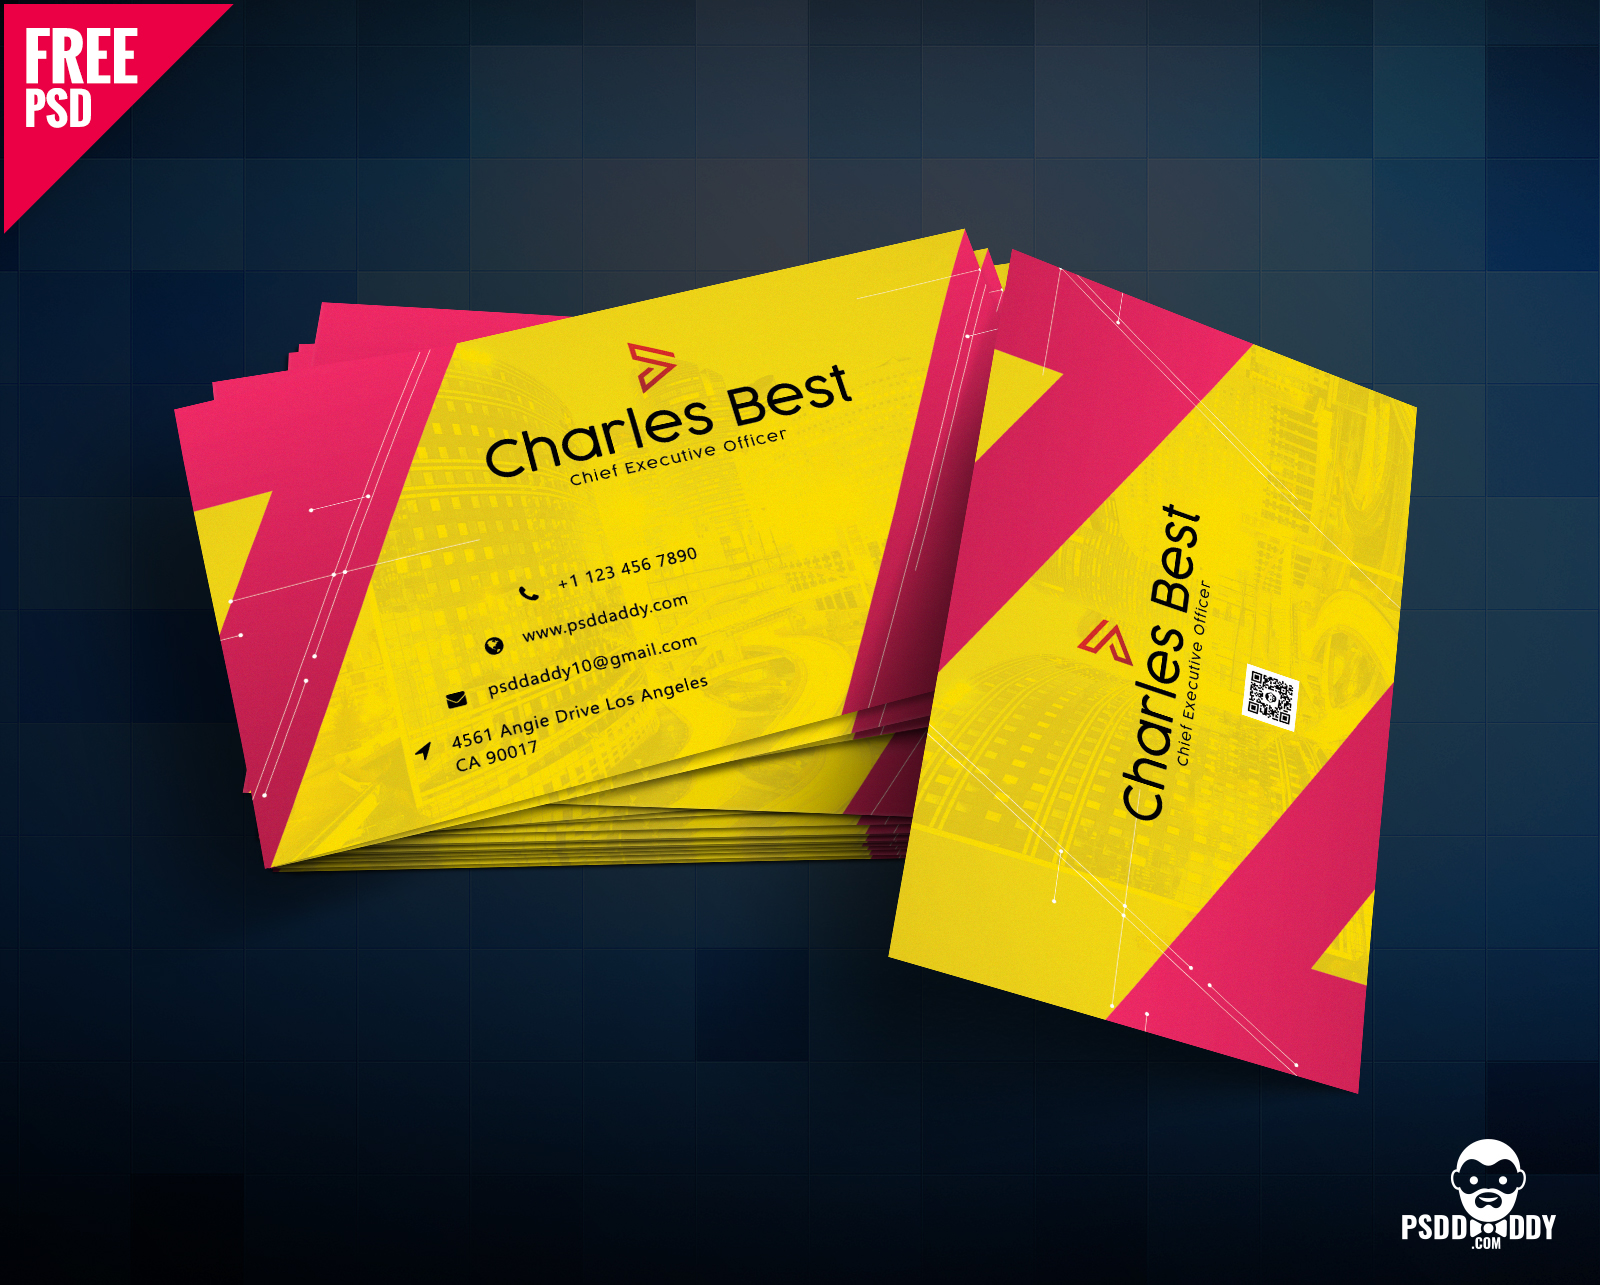 Download] Creative Business Card Free PSD | PsdDaddy.com